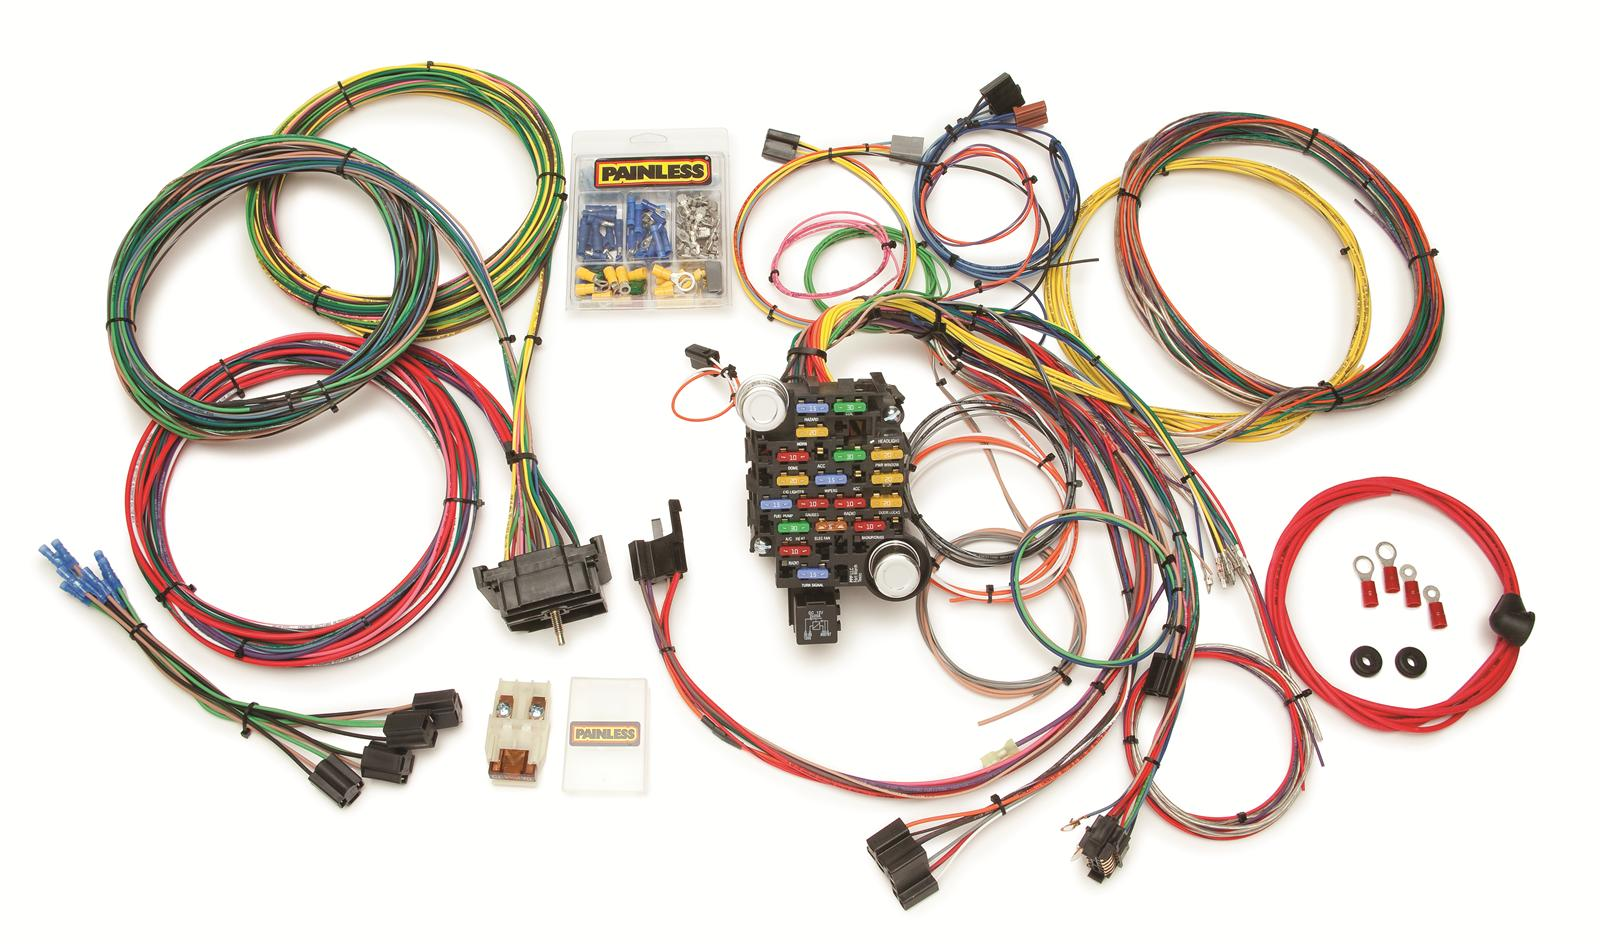 Painless Performance Gmc Chevy Truck Harnesses 10206 Free Shipping 1998 International 7 3 Wiring Harness Diagram On Orders Over 99 At Summit Racing